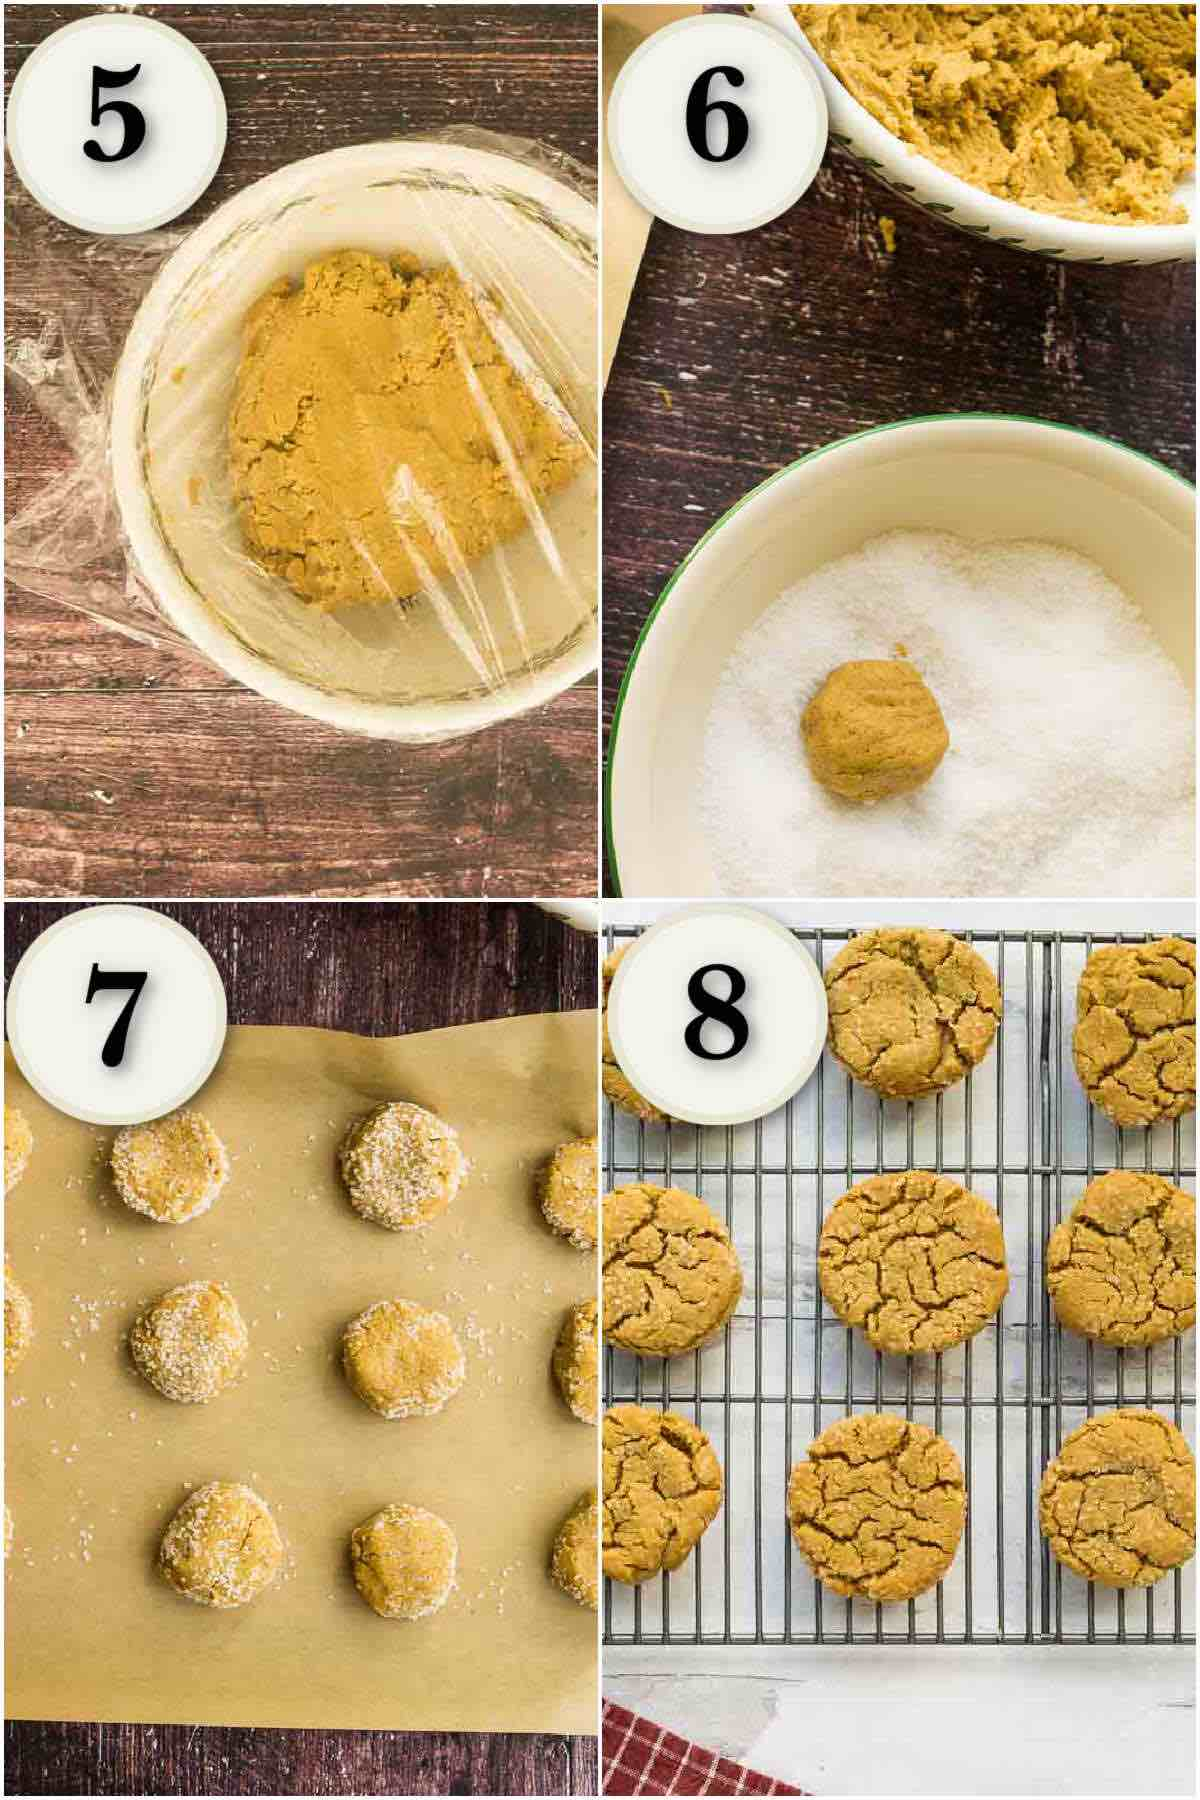 grid of 4 images- cookie dough in bowl chilling, being rolled in sugar, and baked